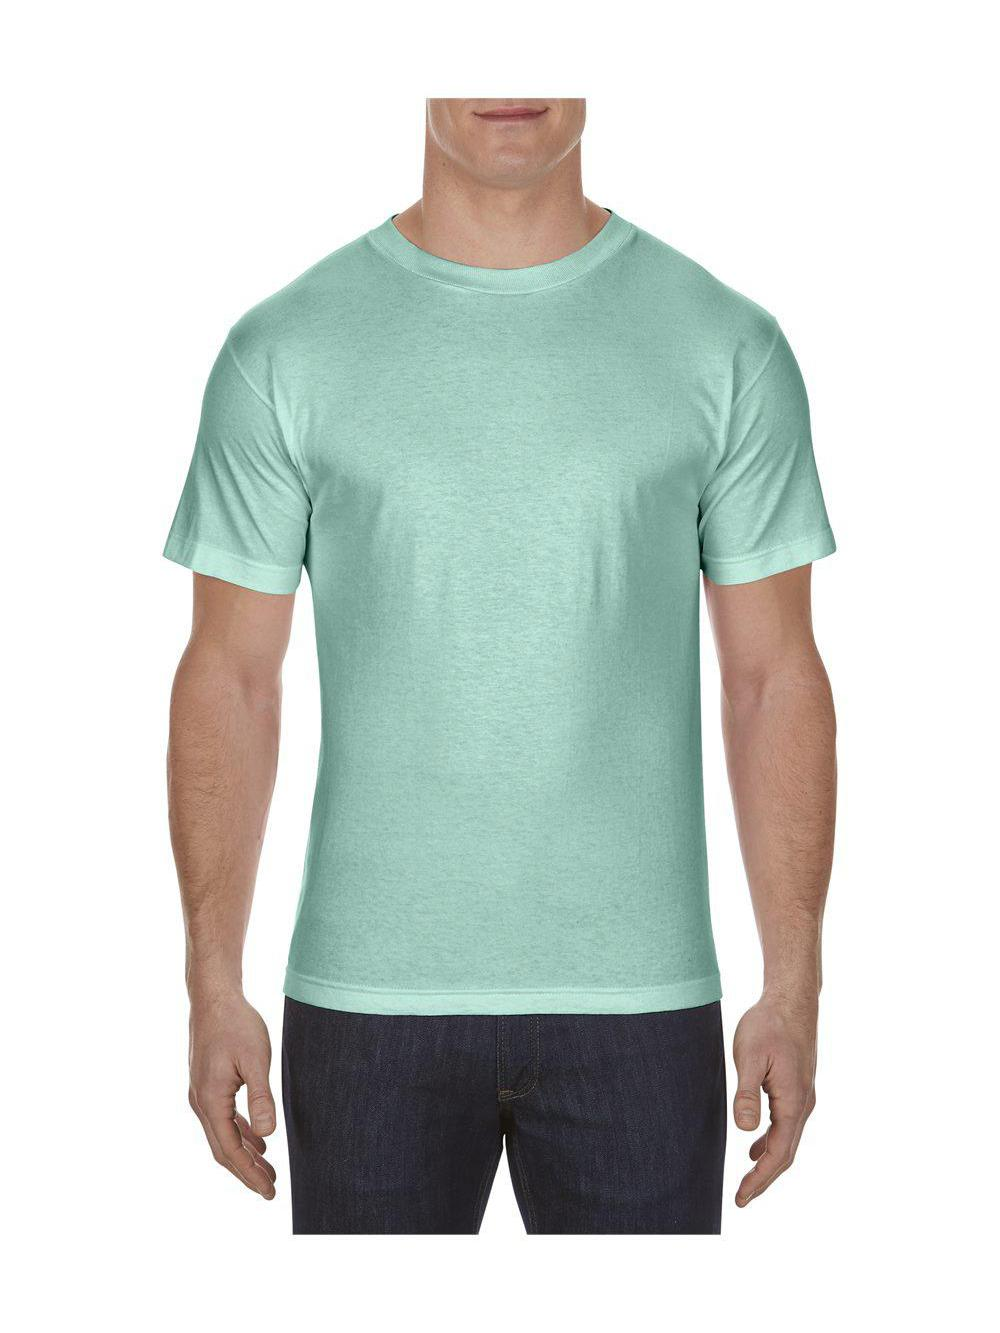 ALSTYLE-Classic-T-Shirt-1301 thumbnail 24